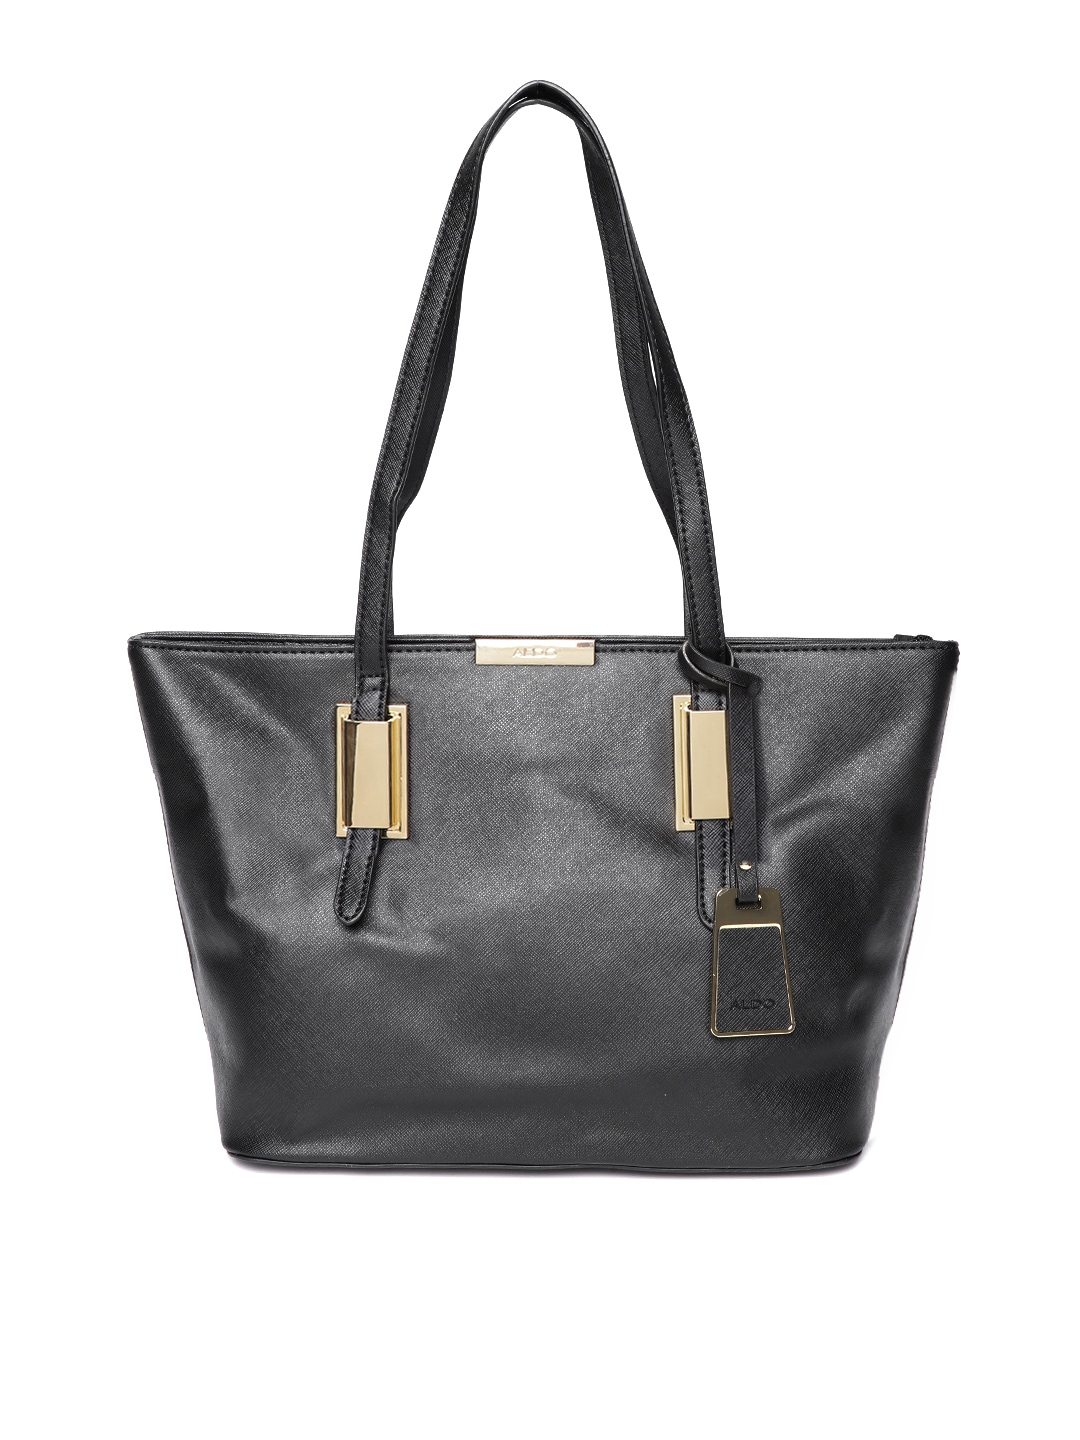 49f99f988f3 Aldo Bags - Buy Aldo Bags online in India